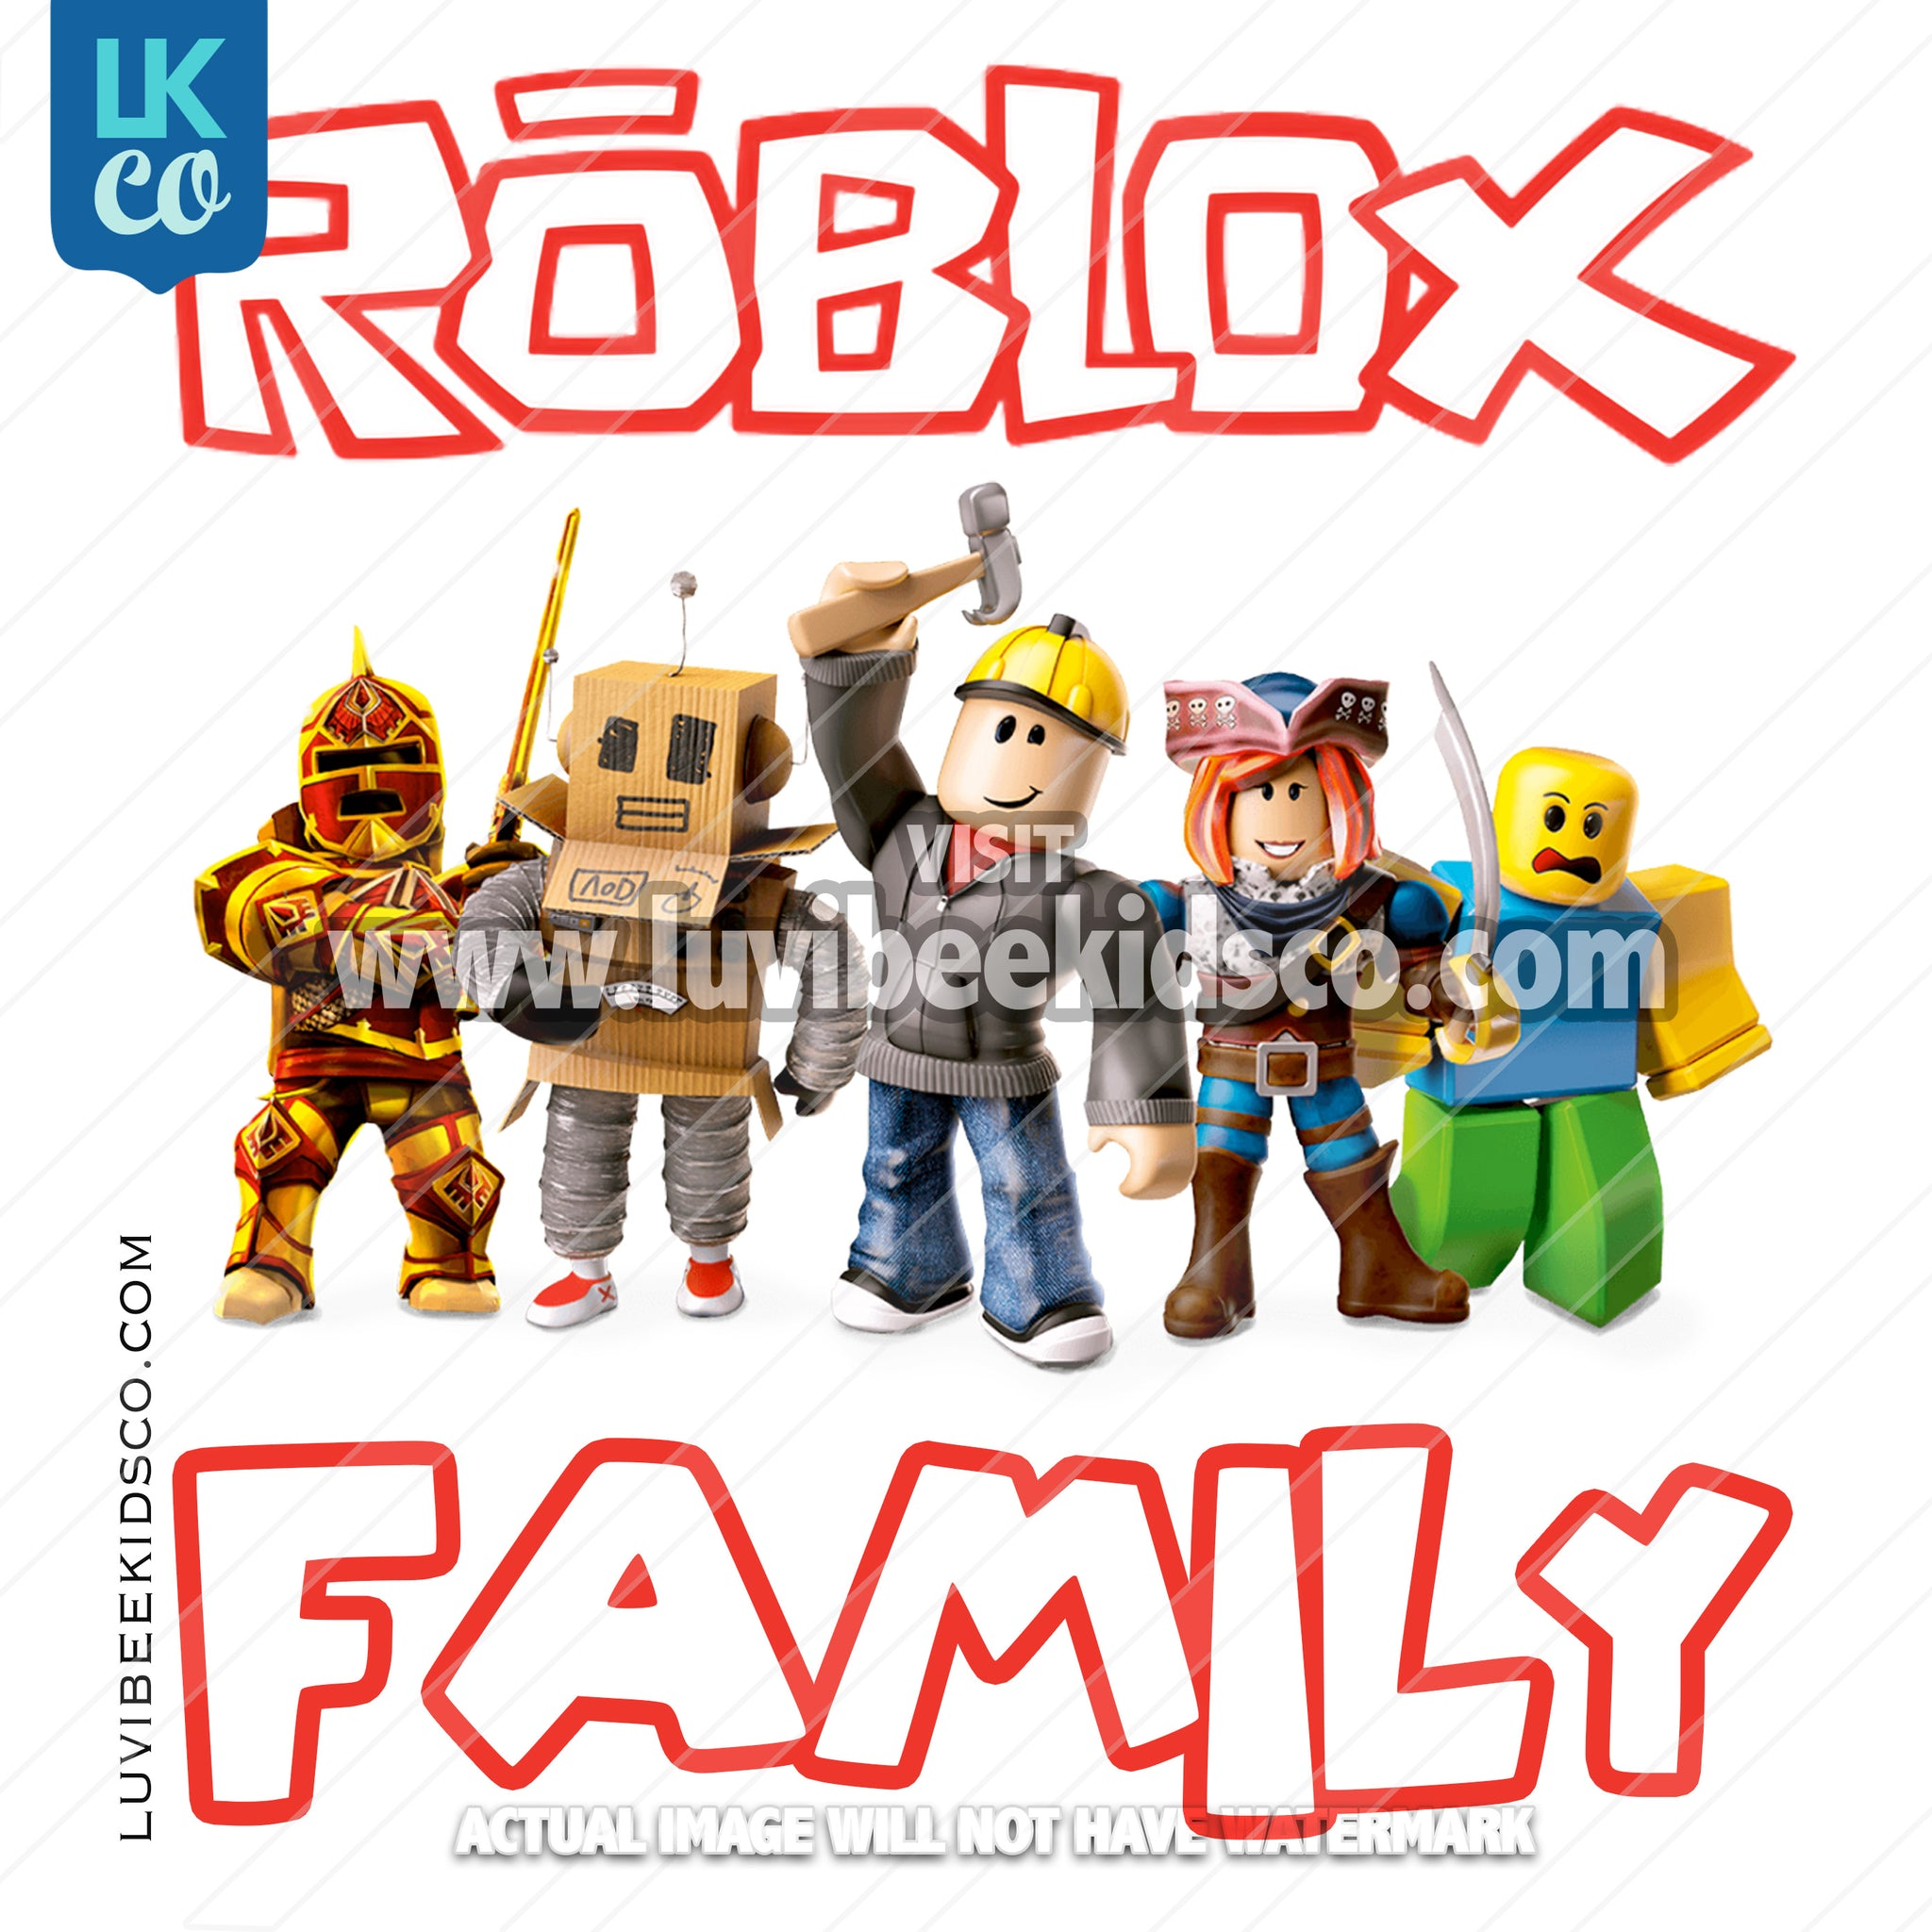 Roblox Heat Transfer Designs - Add Family Members